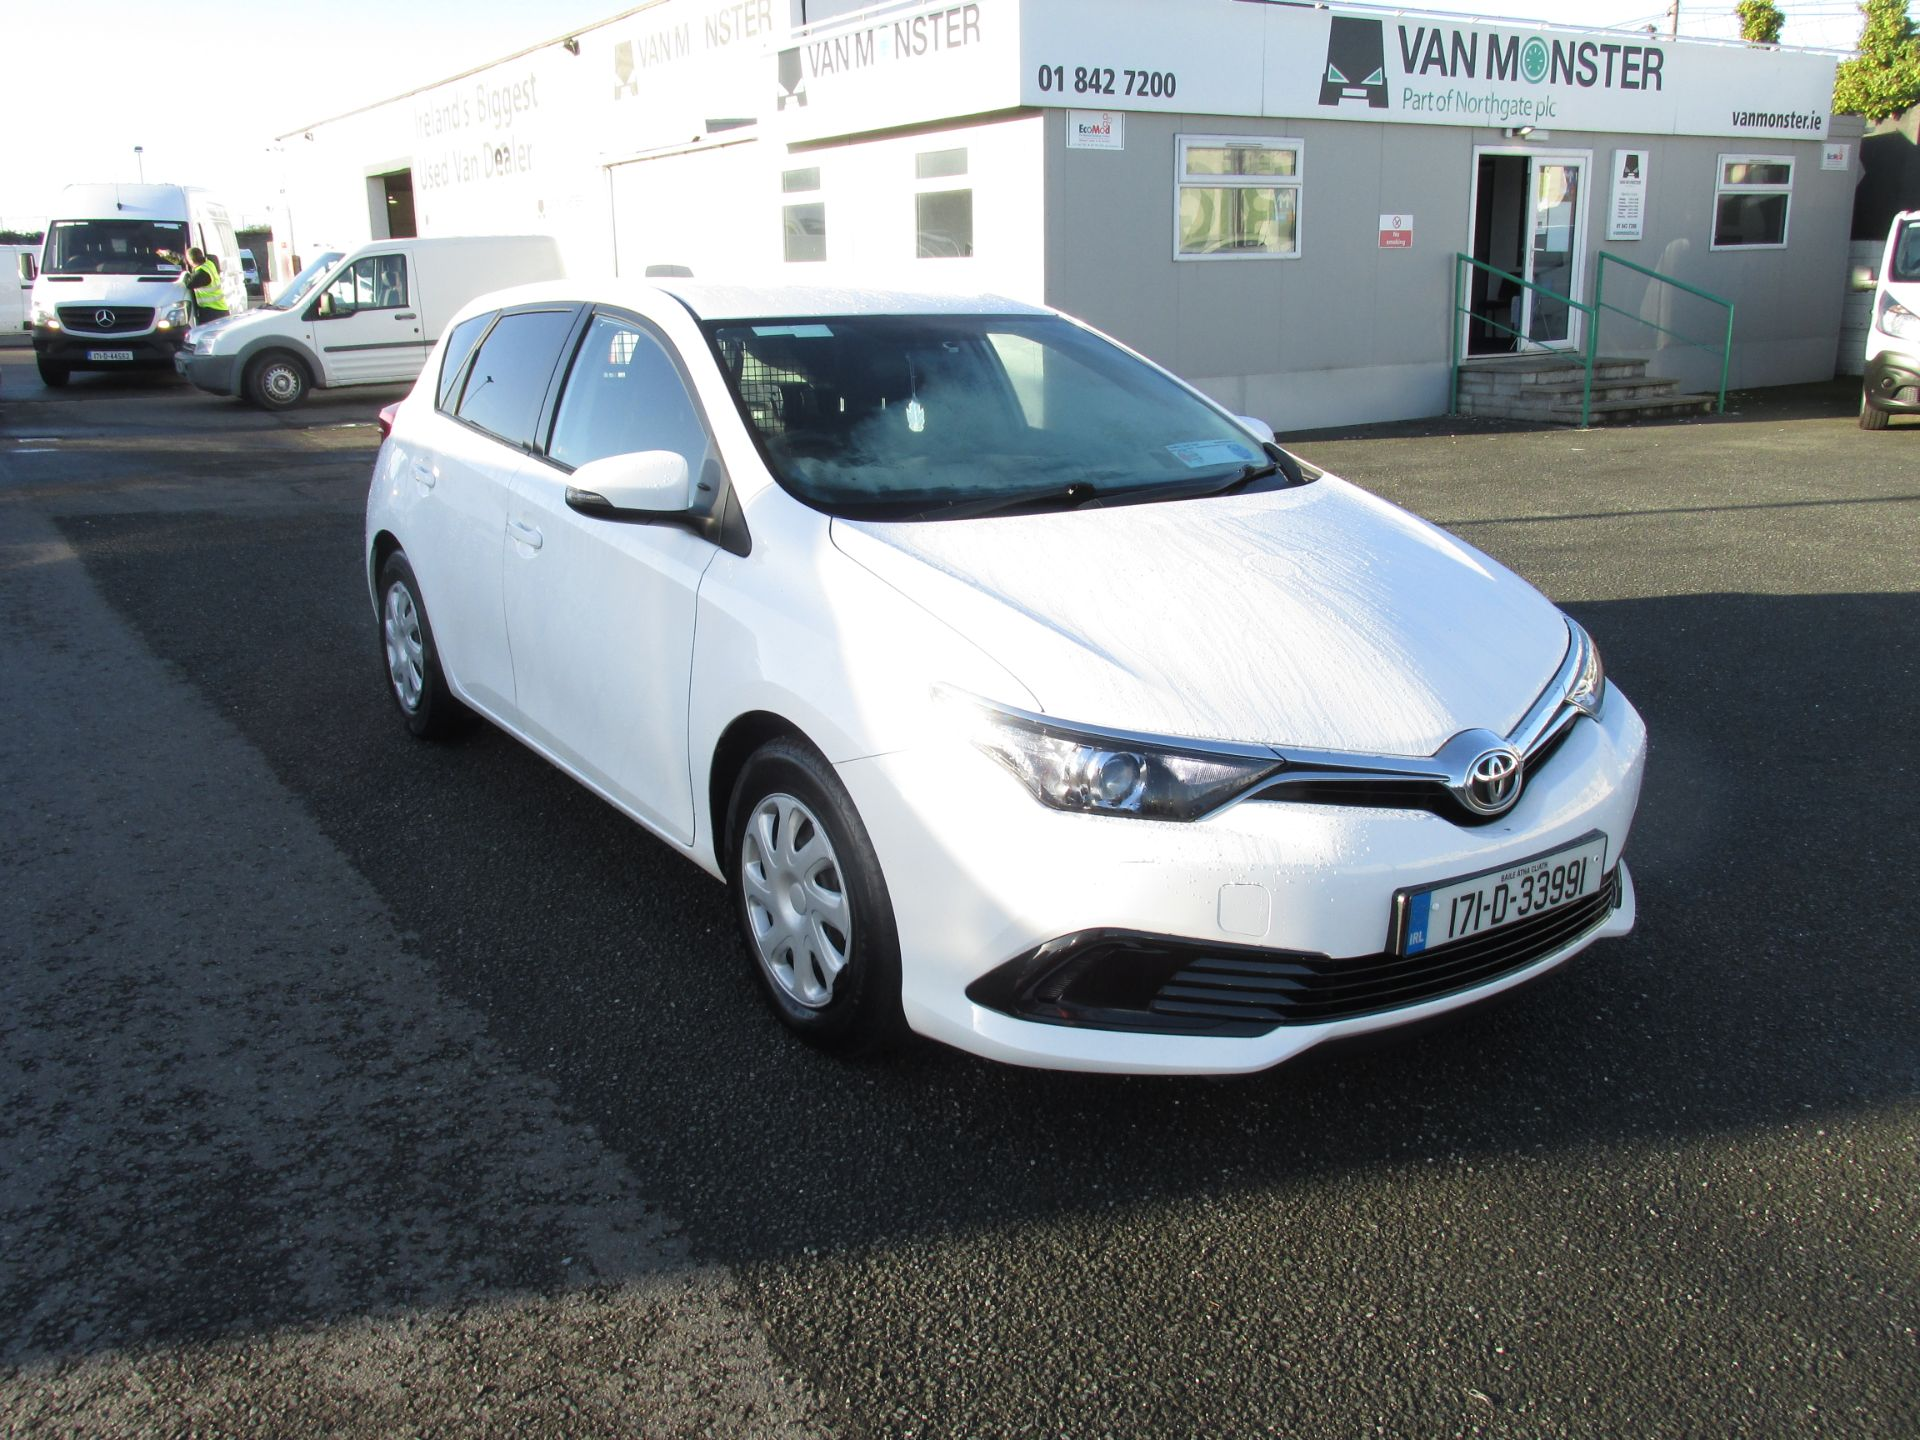 2017 Toyota Auris 1.4d-4d Terra 4DR click and collect call sales for more info (171D33991) Image 1